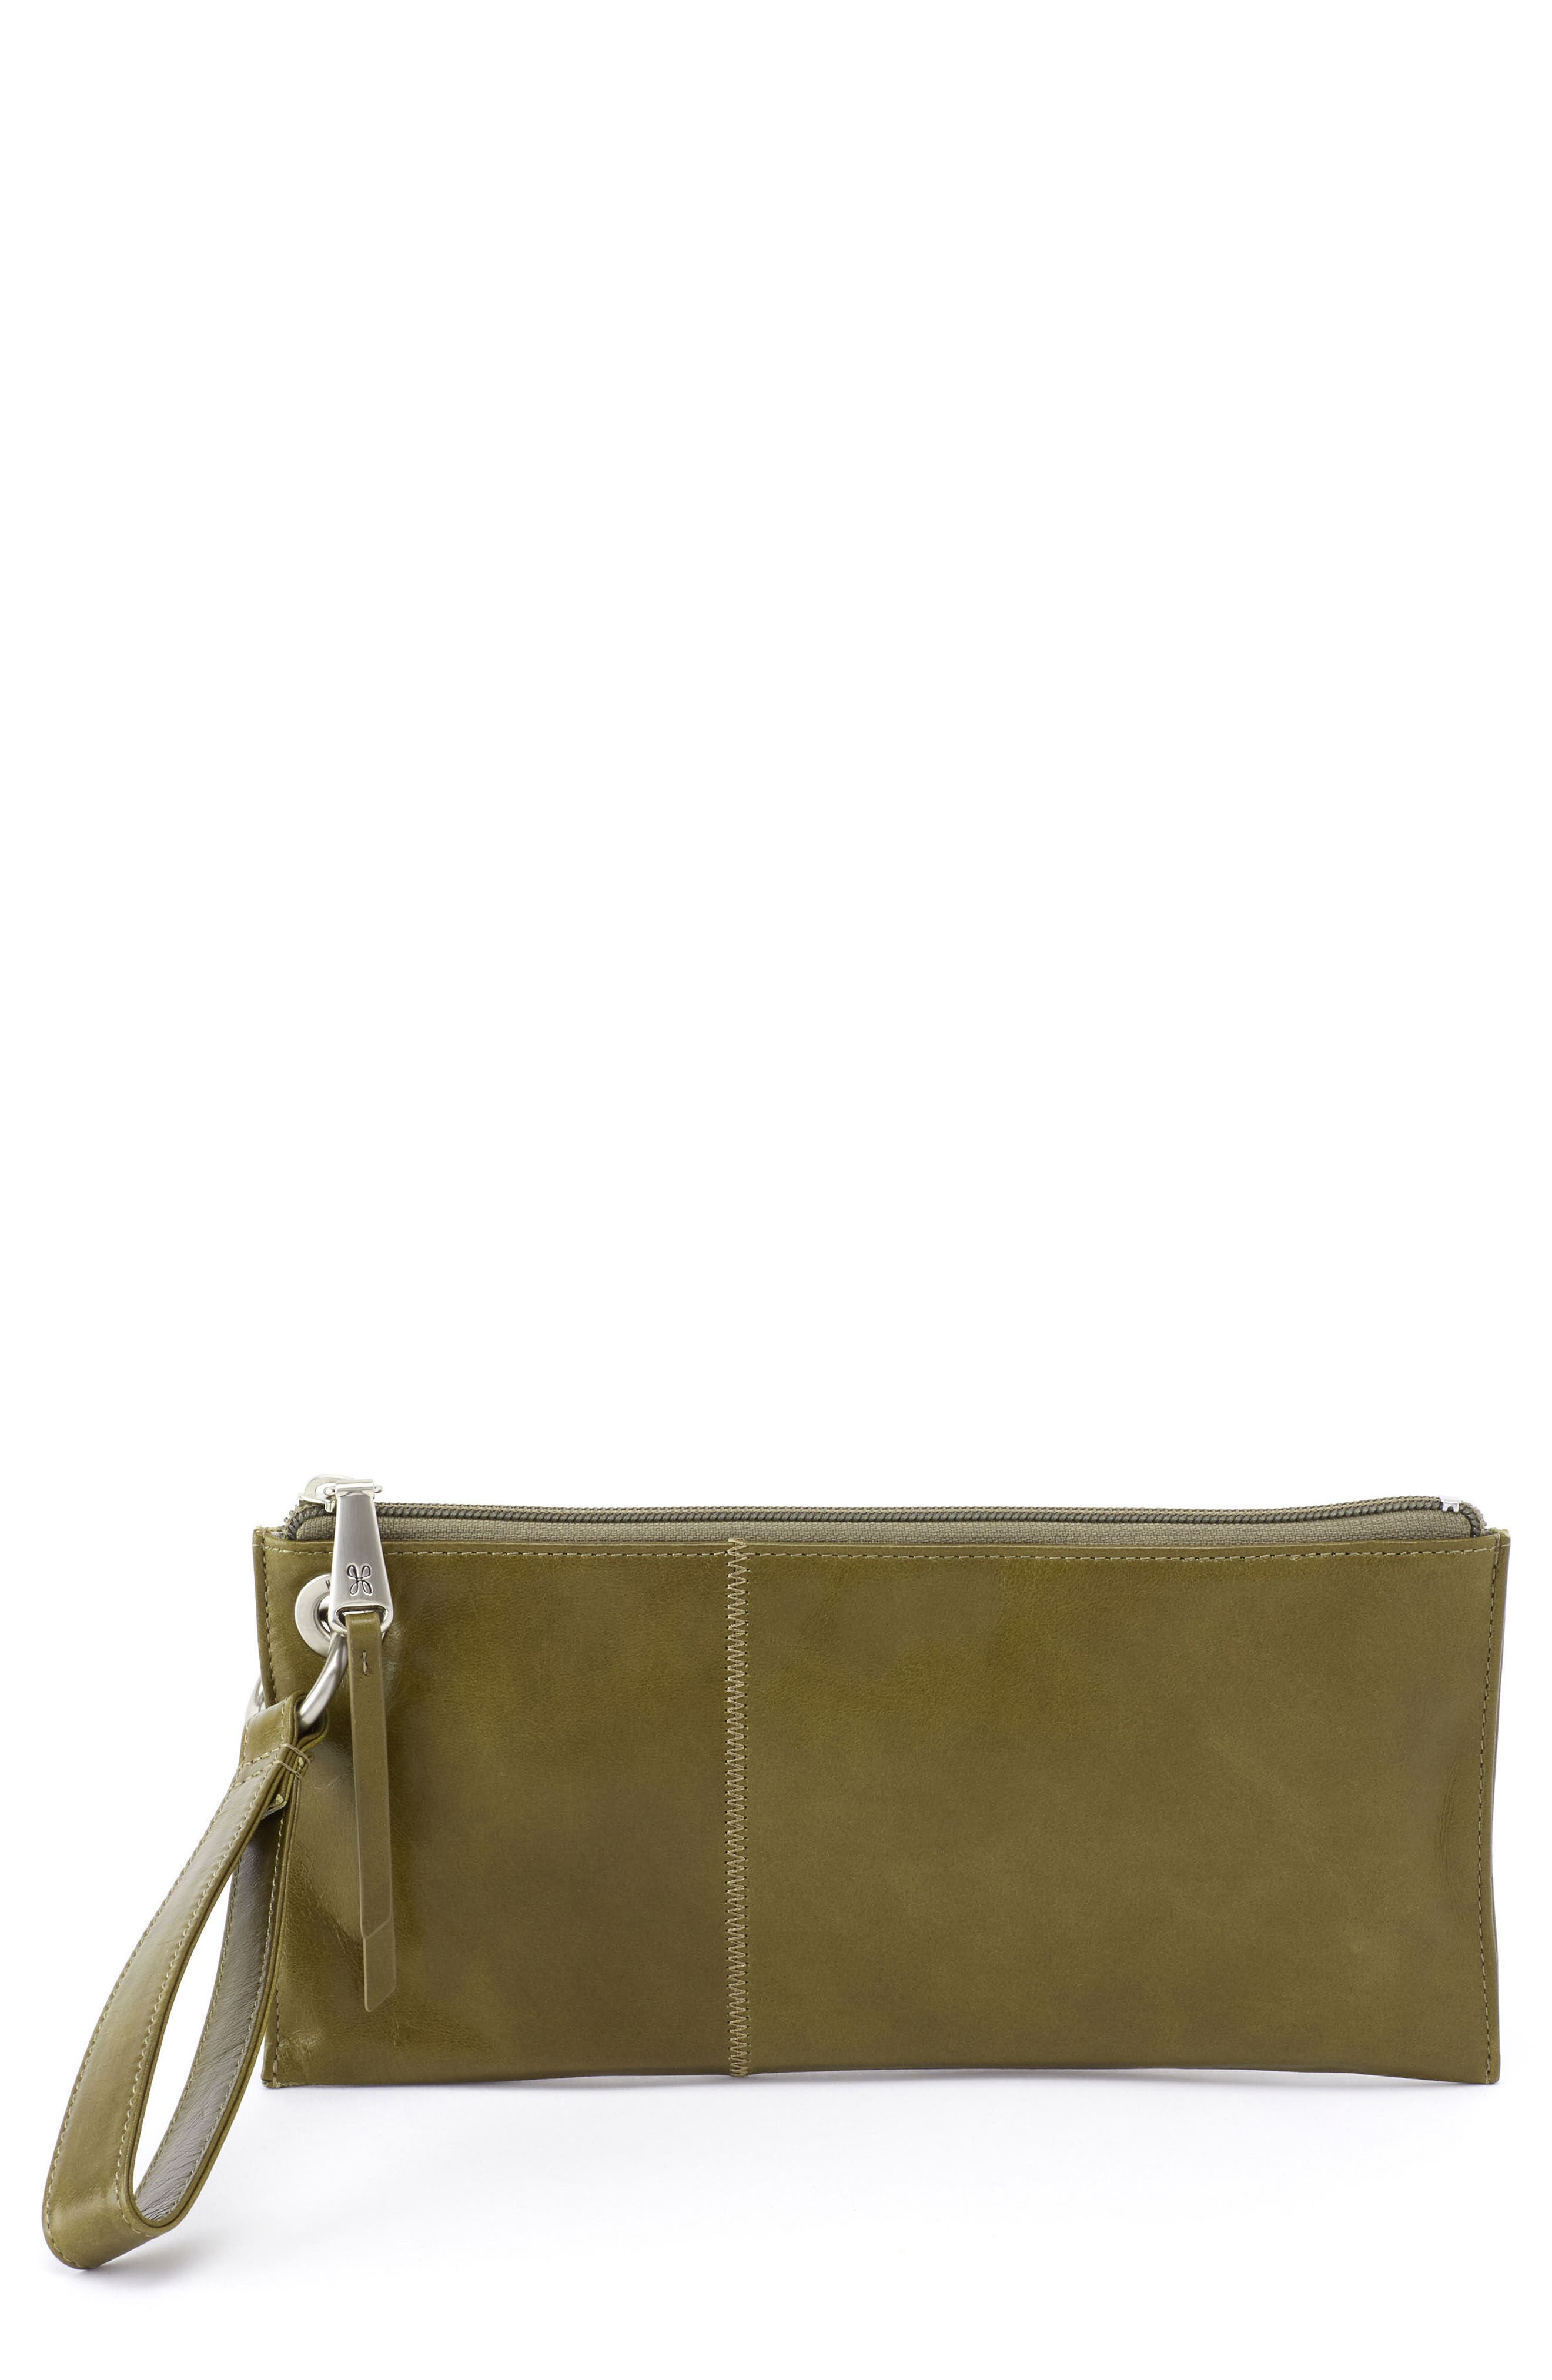 VIDA Leather Statement Clutch - guidance clutch 2 by VIDA 1x7RIzIjO